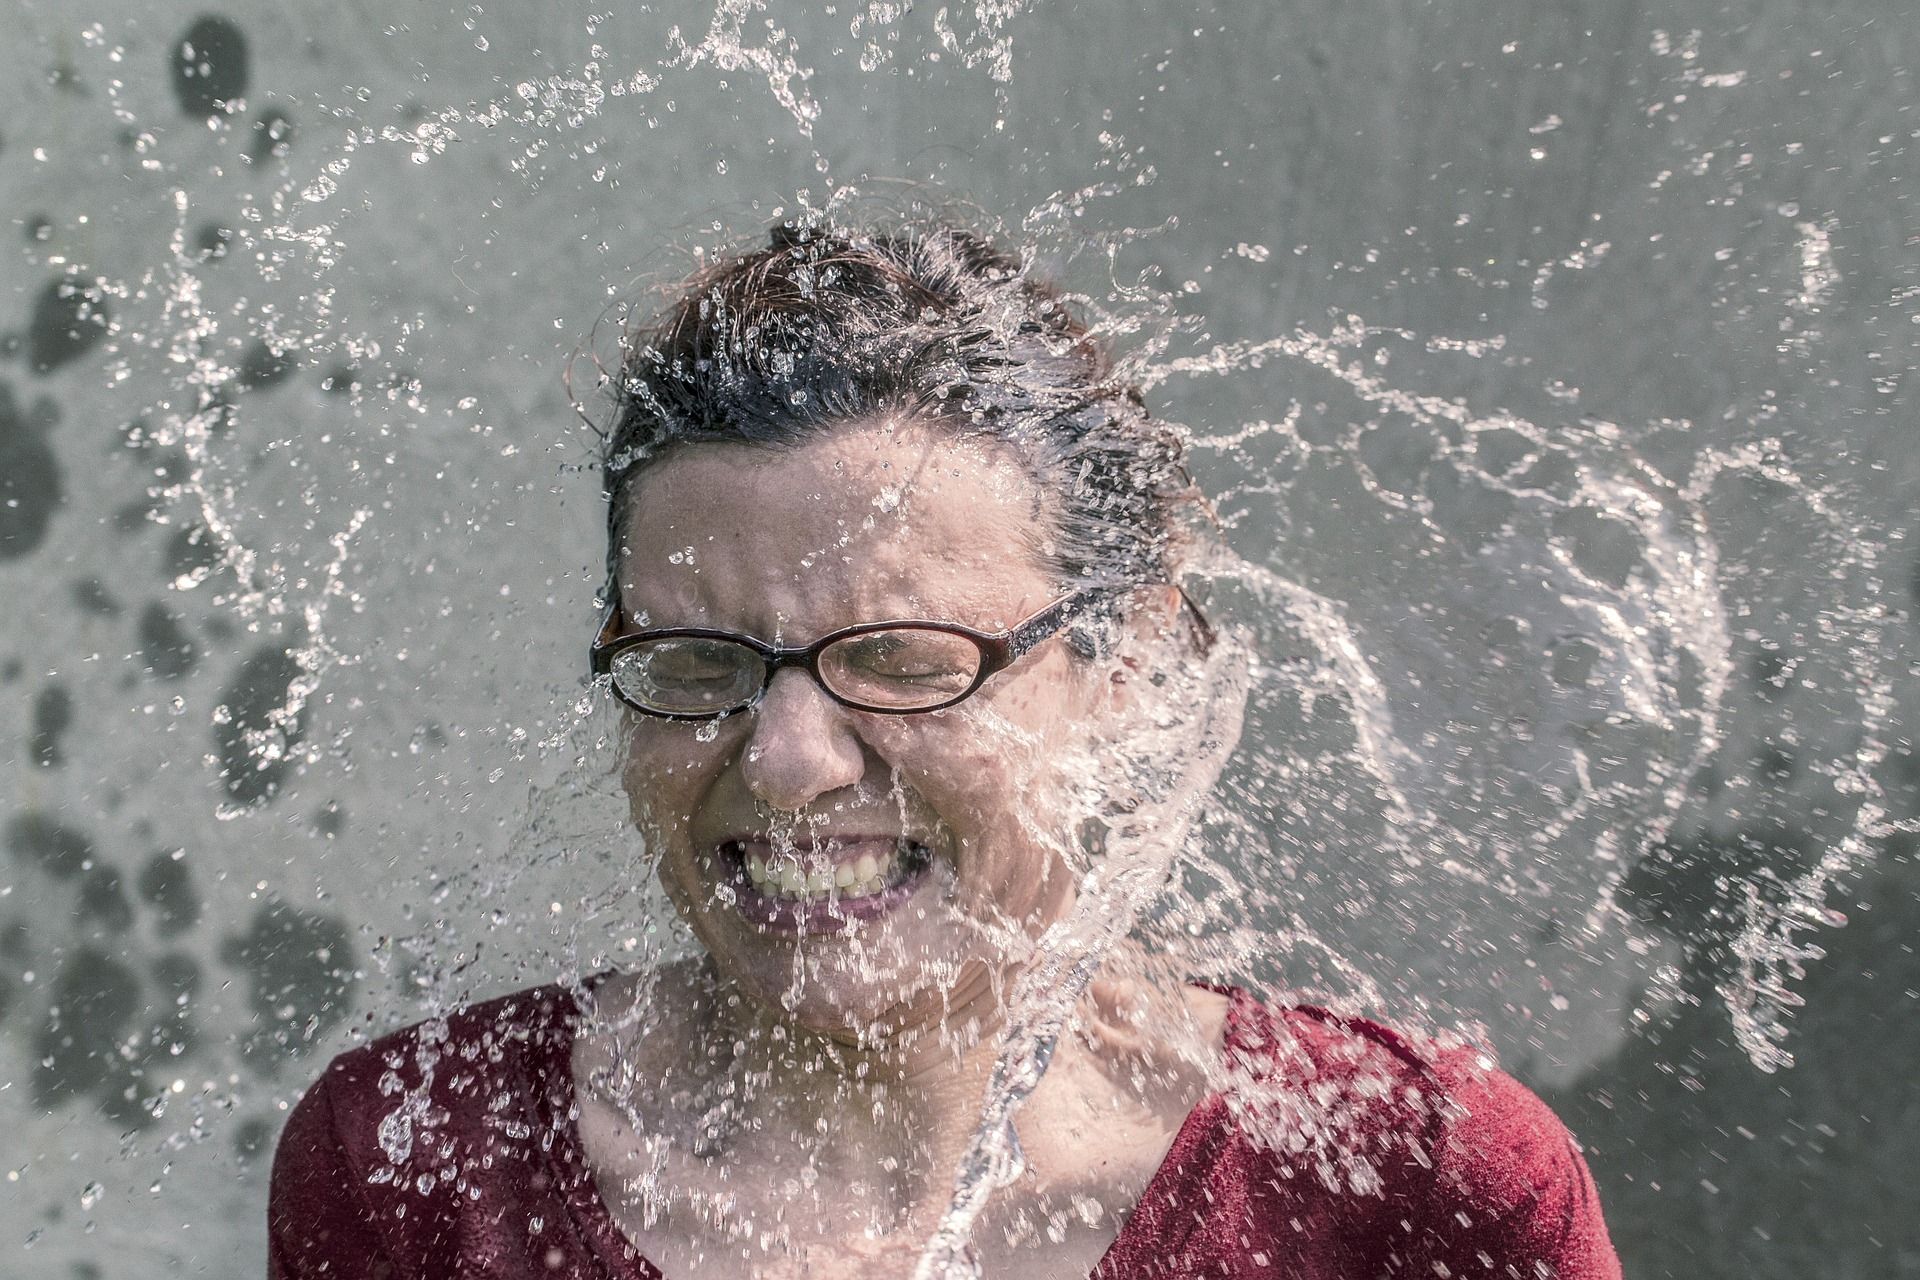 Lady getting splashed with water in the face